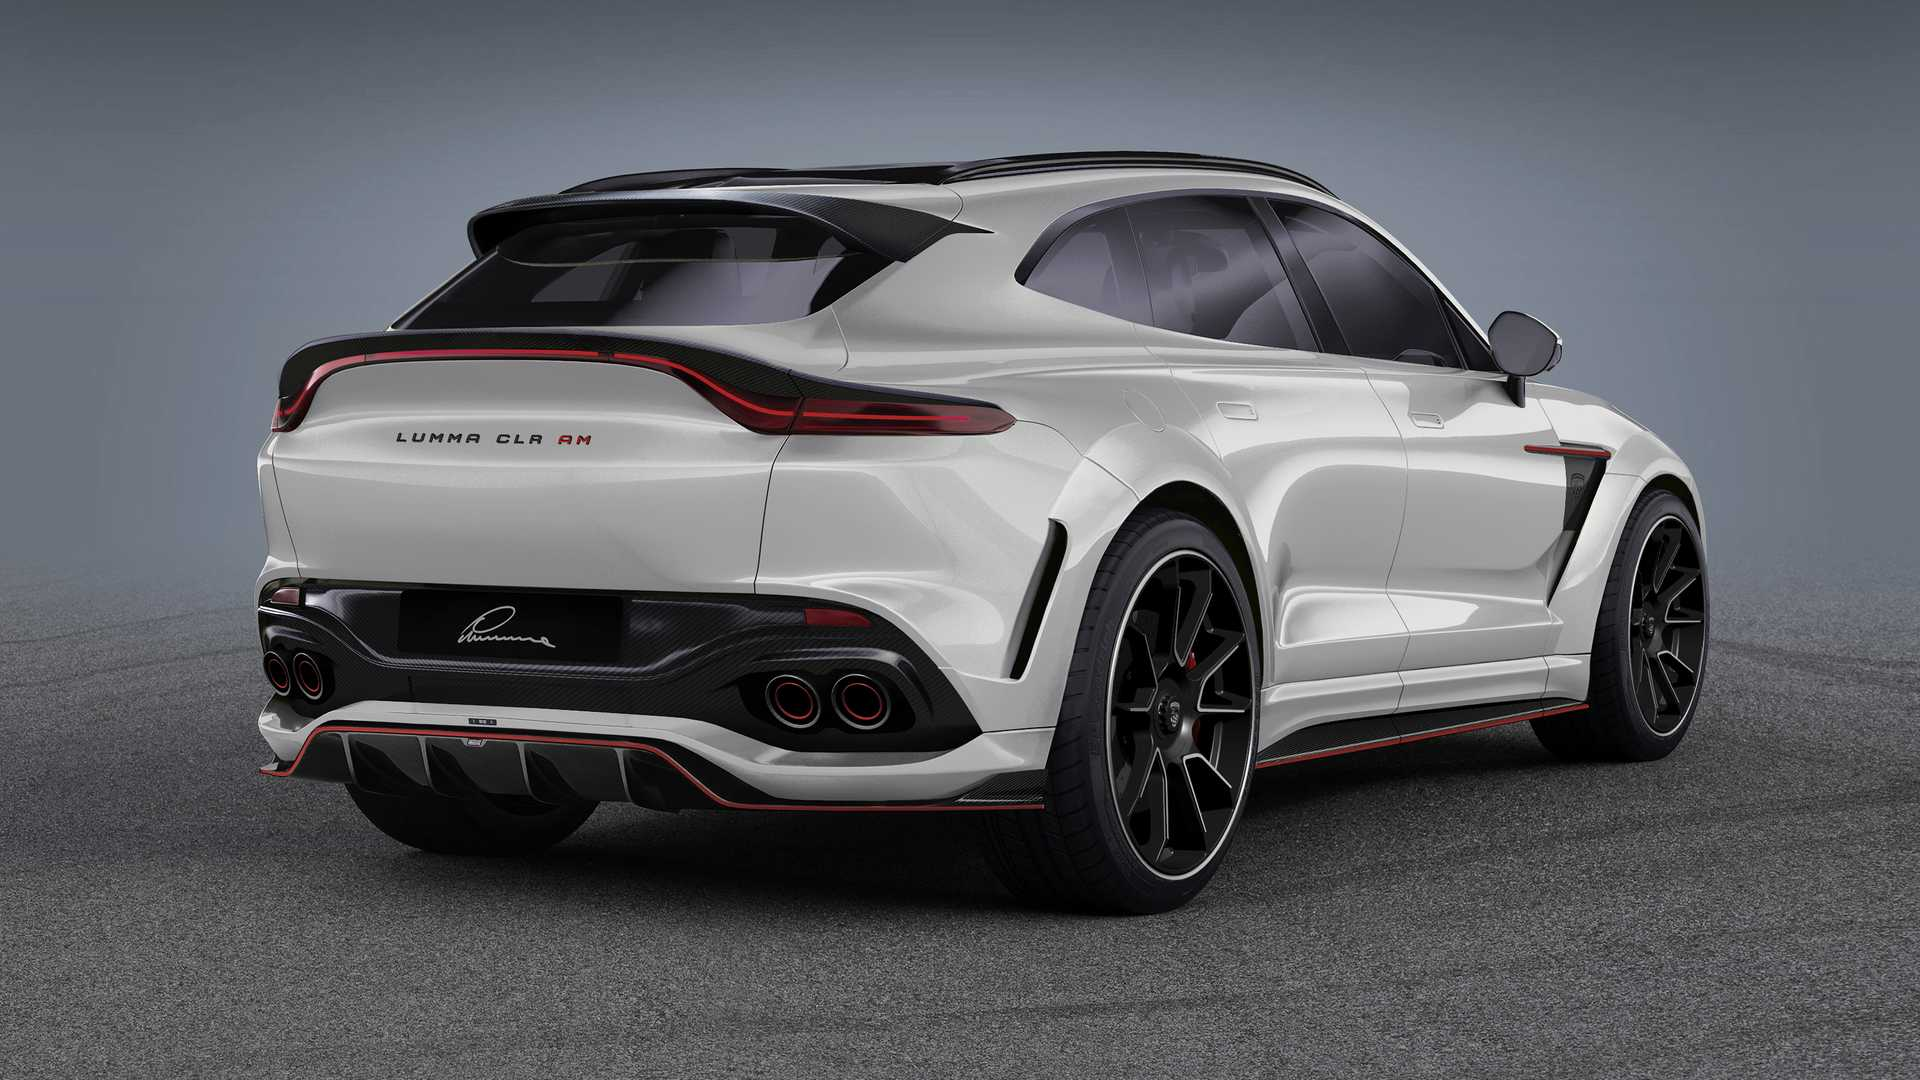 aston-martin-dbx-by-lumma-design-6